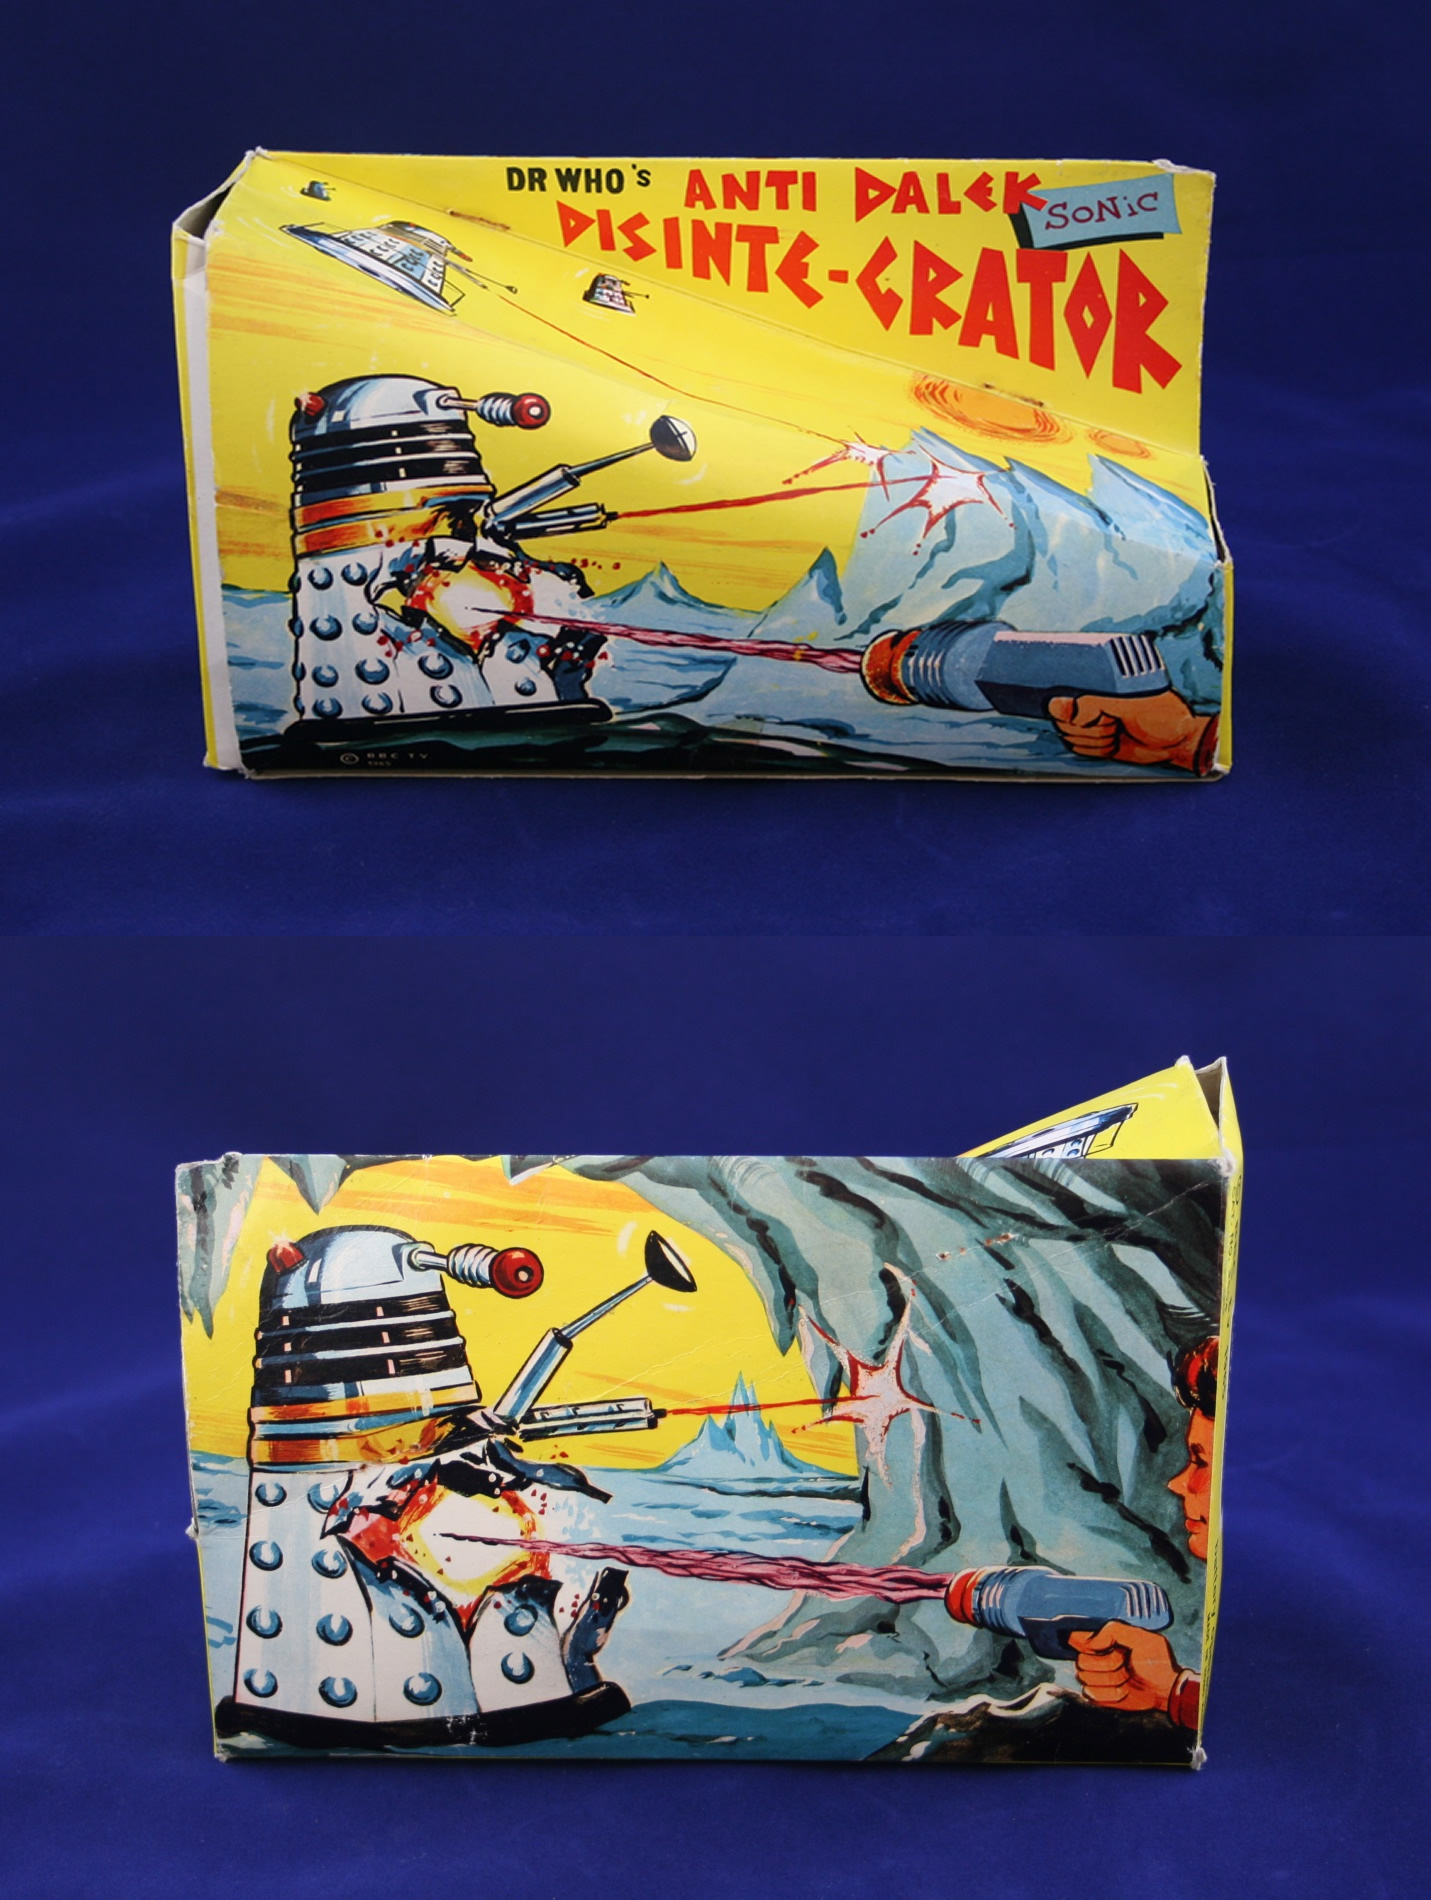 Lincoln International Ltd., Dr. Who's Anti-Dalek Sonic Disintegrator (front and rear of box)